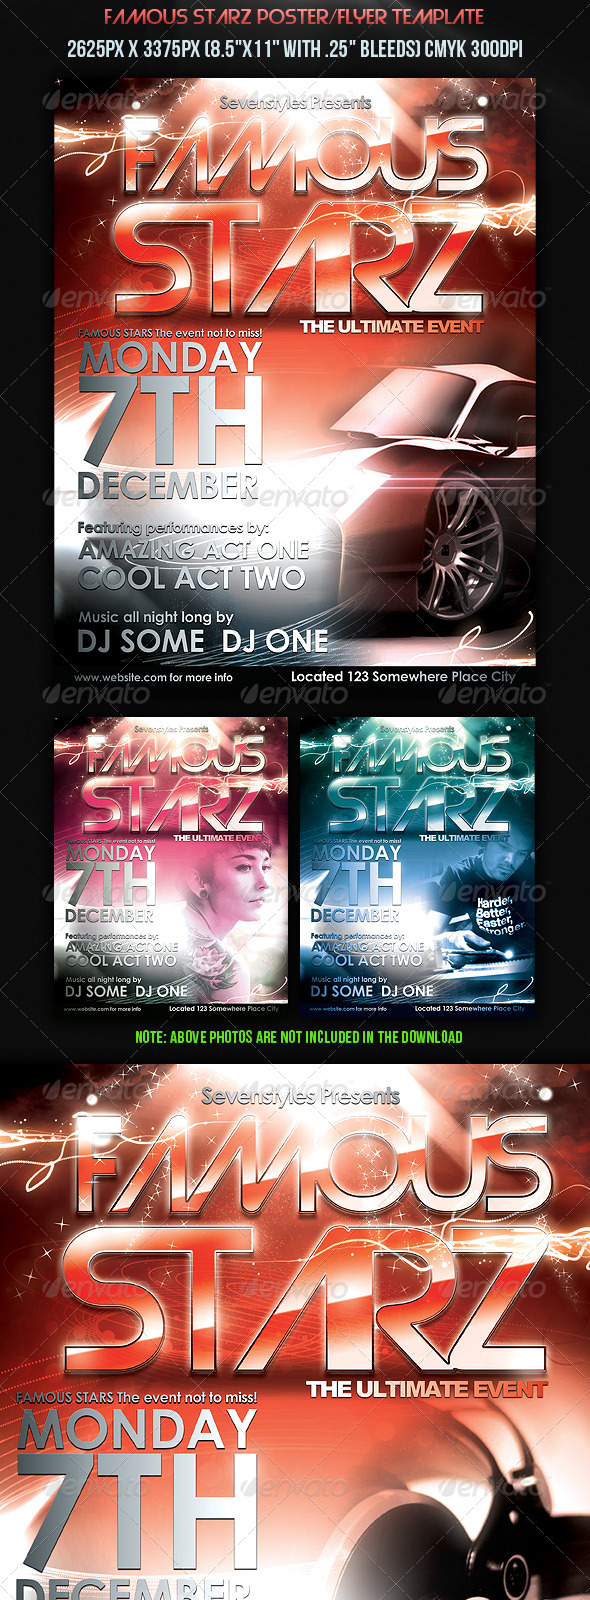 Famous Starz Flyer/Poster Template. - Clubs & Parties Events